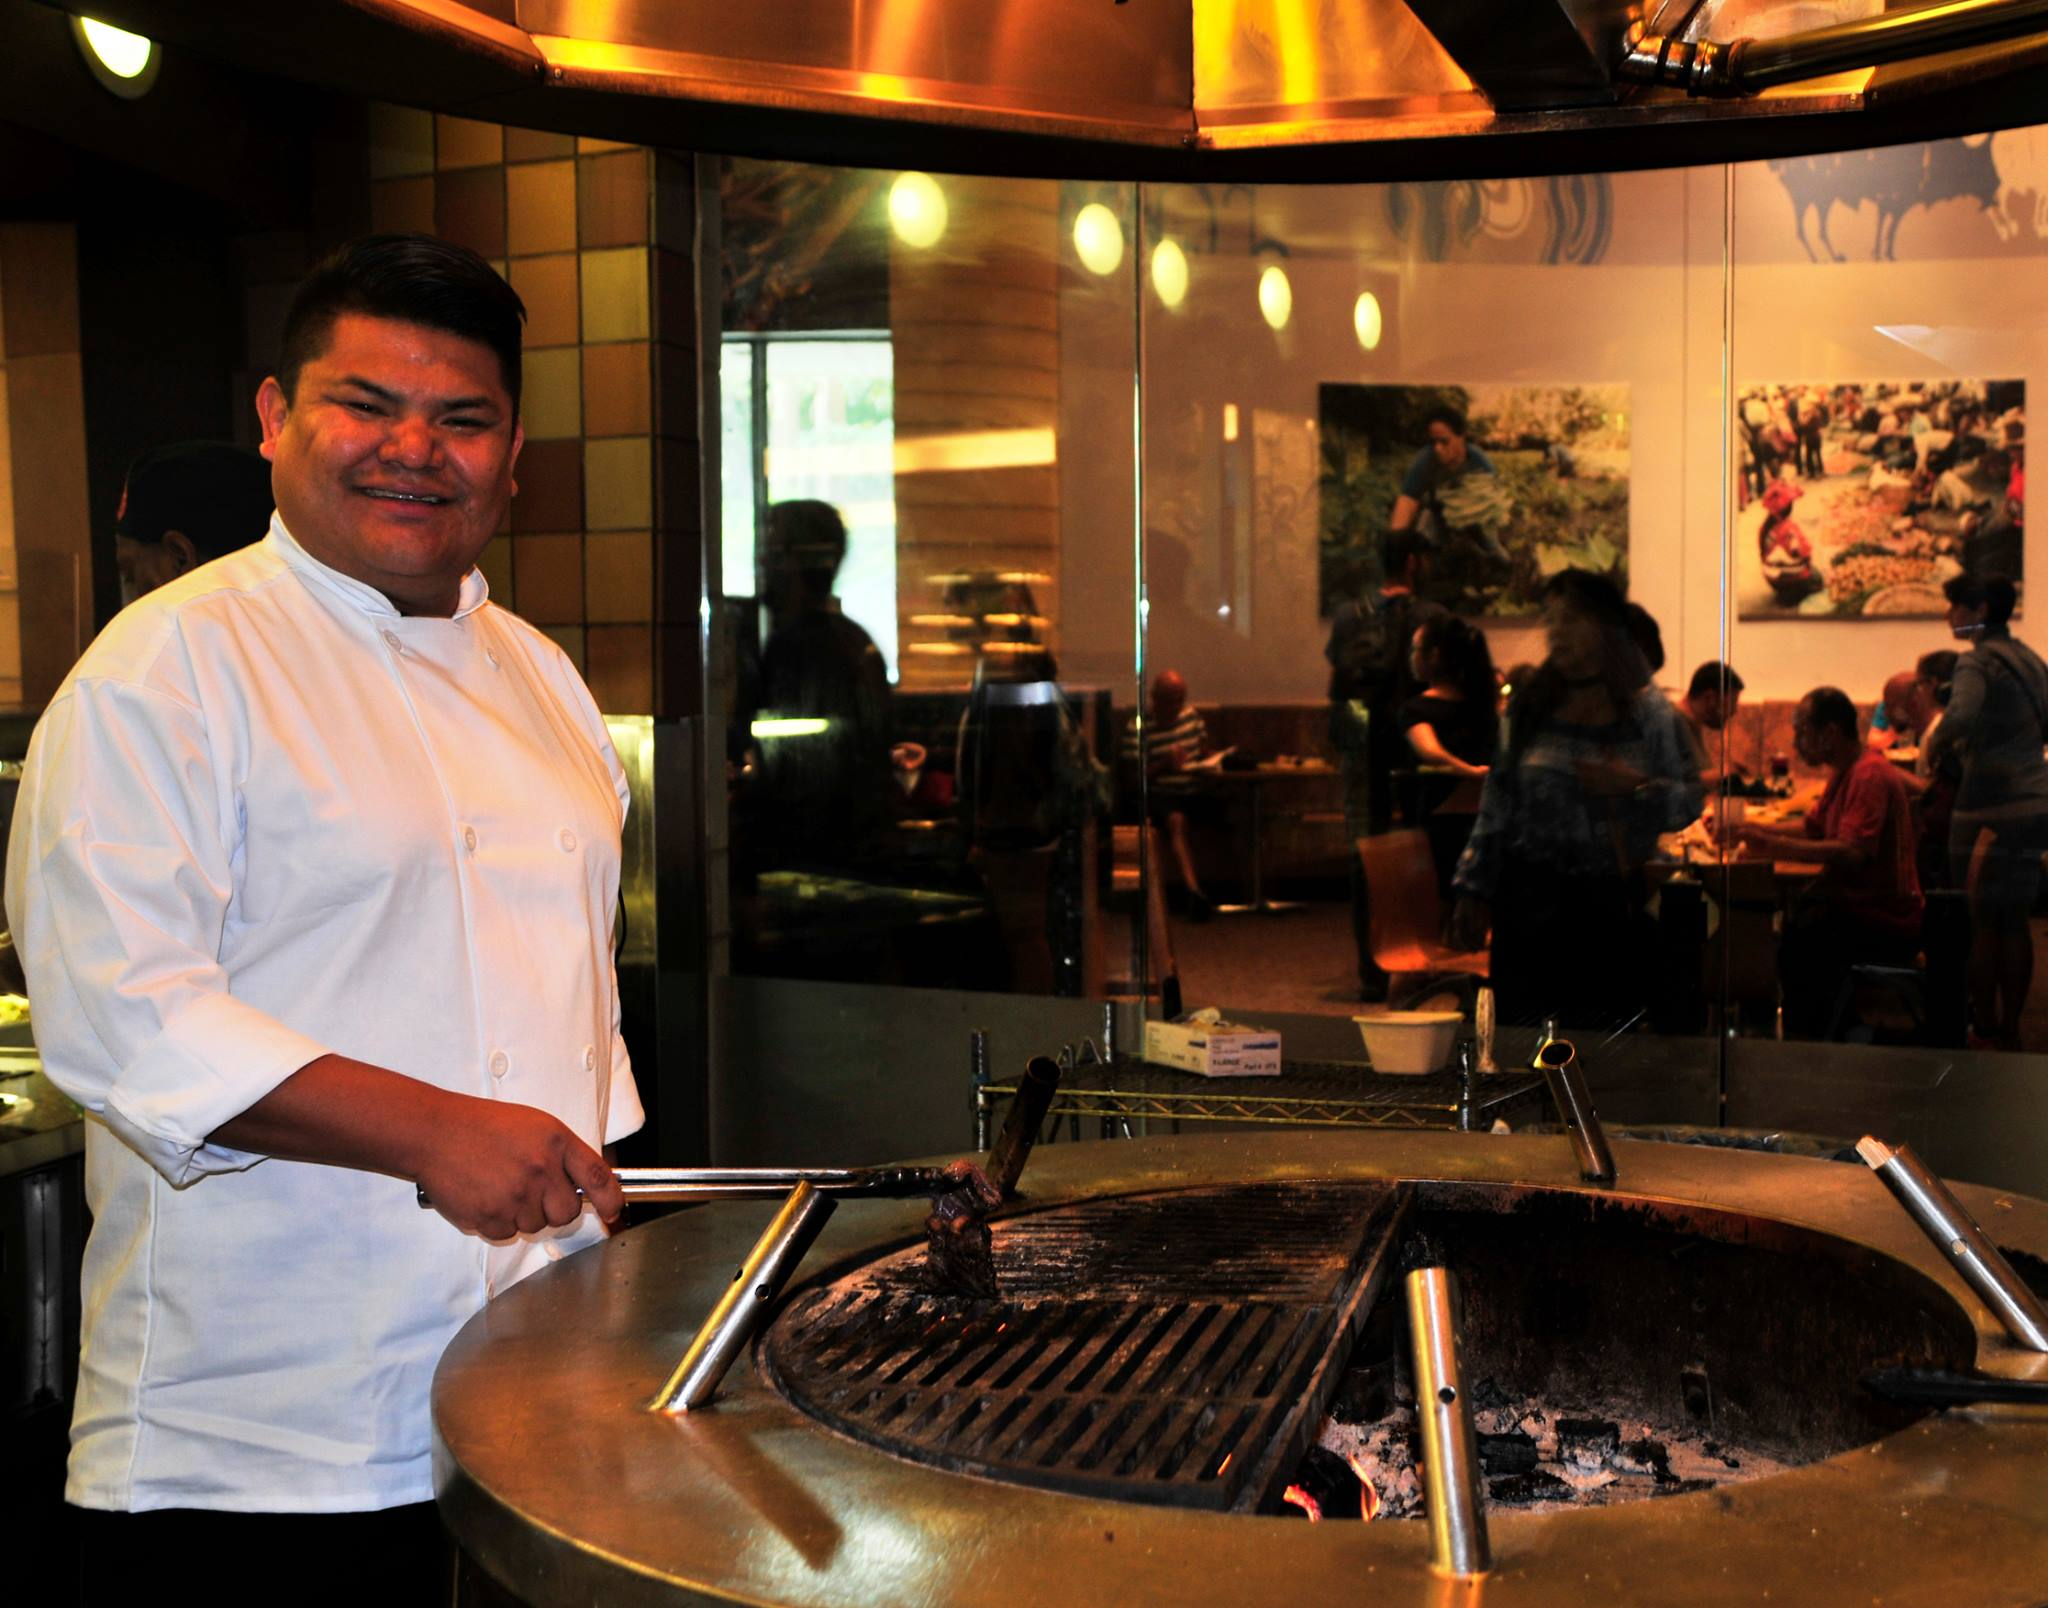 New chef brings Native perspective to popular Smithsonian eatery